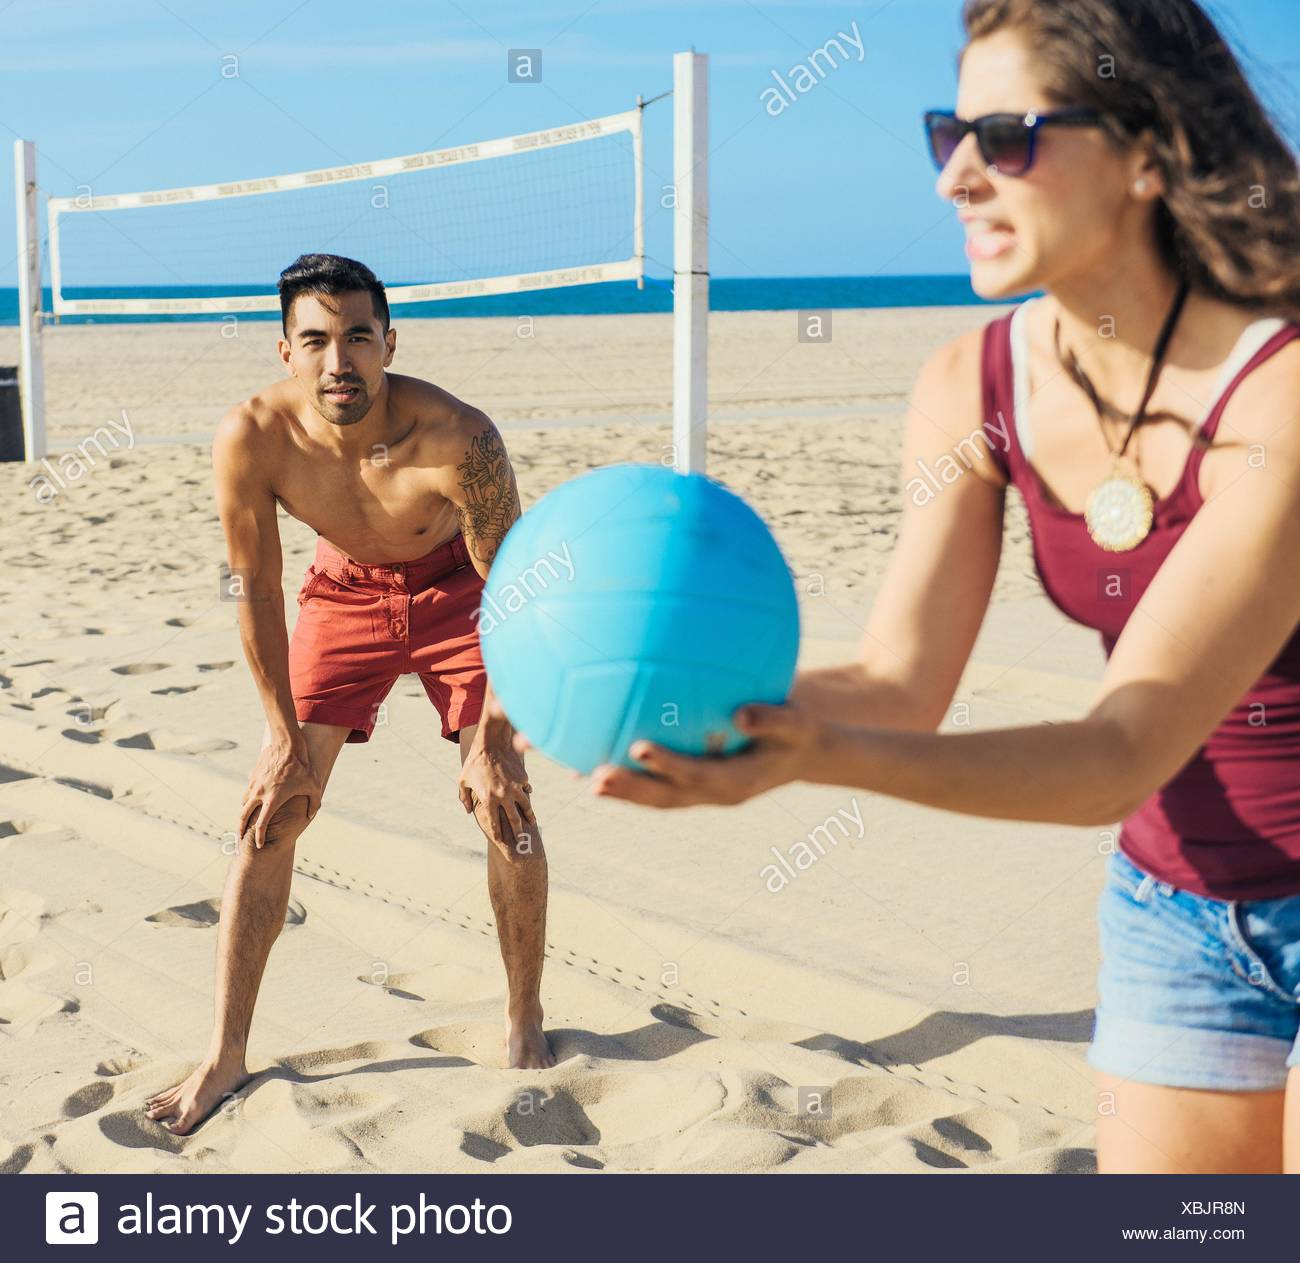 Groupe d'amis jouer au volley-ball sur plage Photo Stock